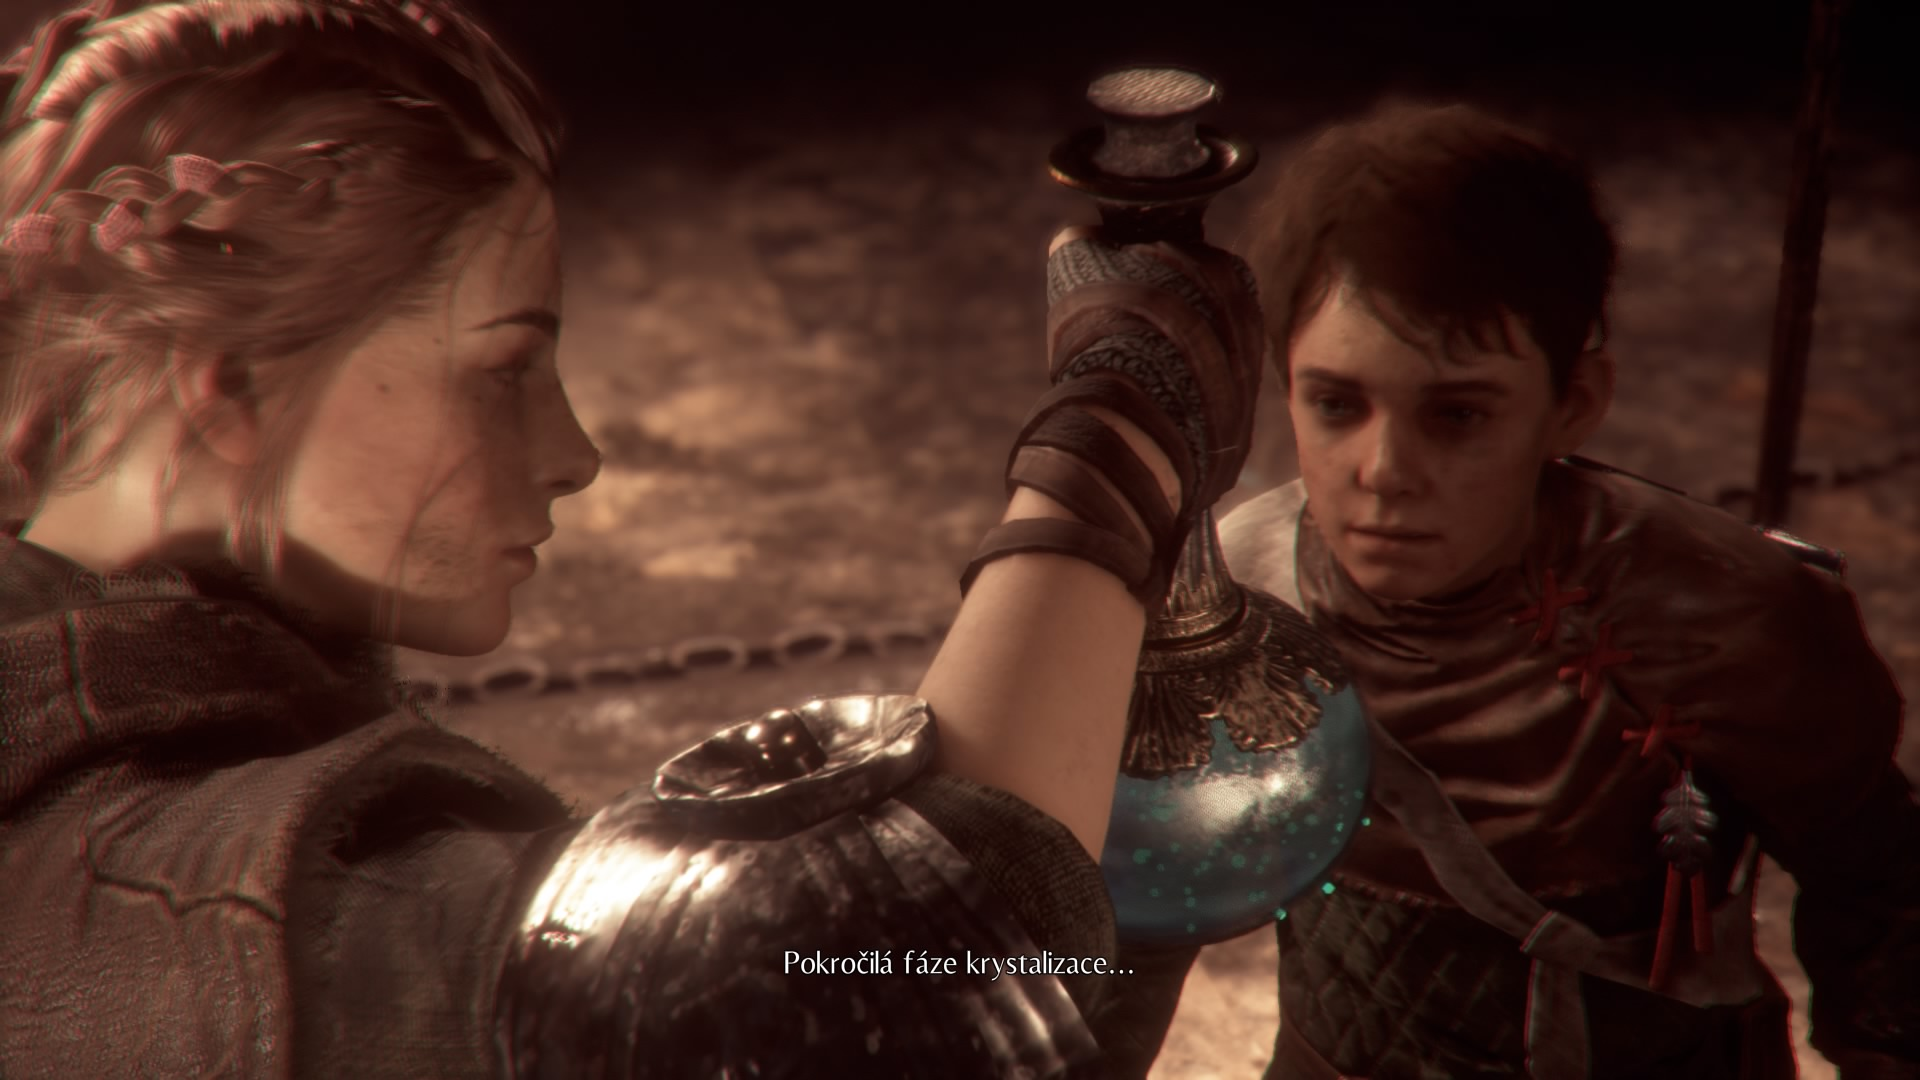 Amicia and Lucas Plague Tale